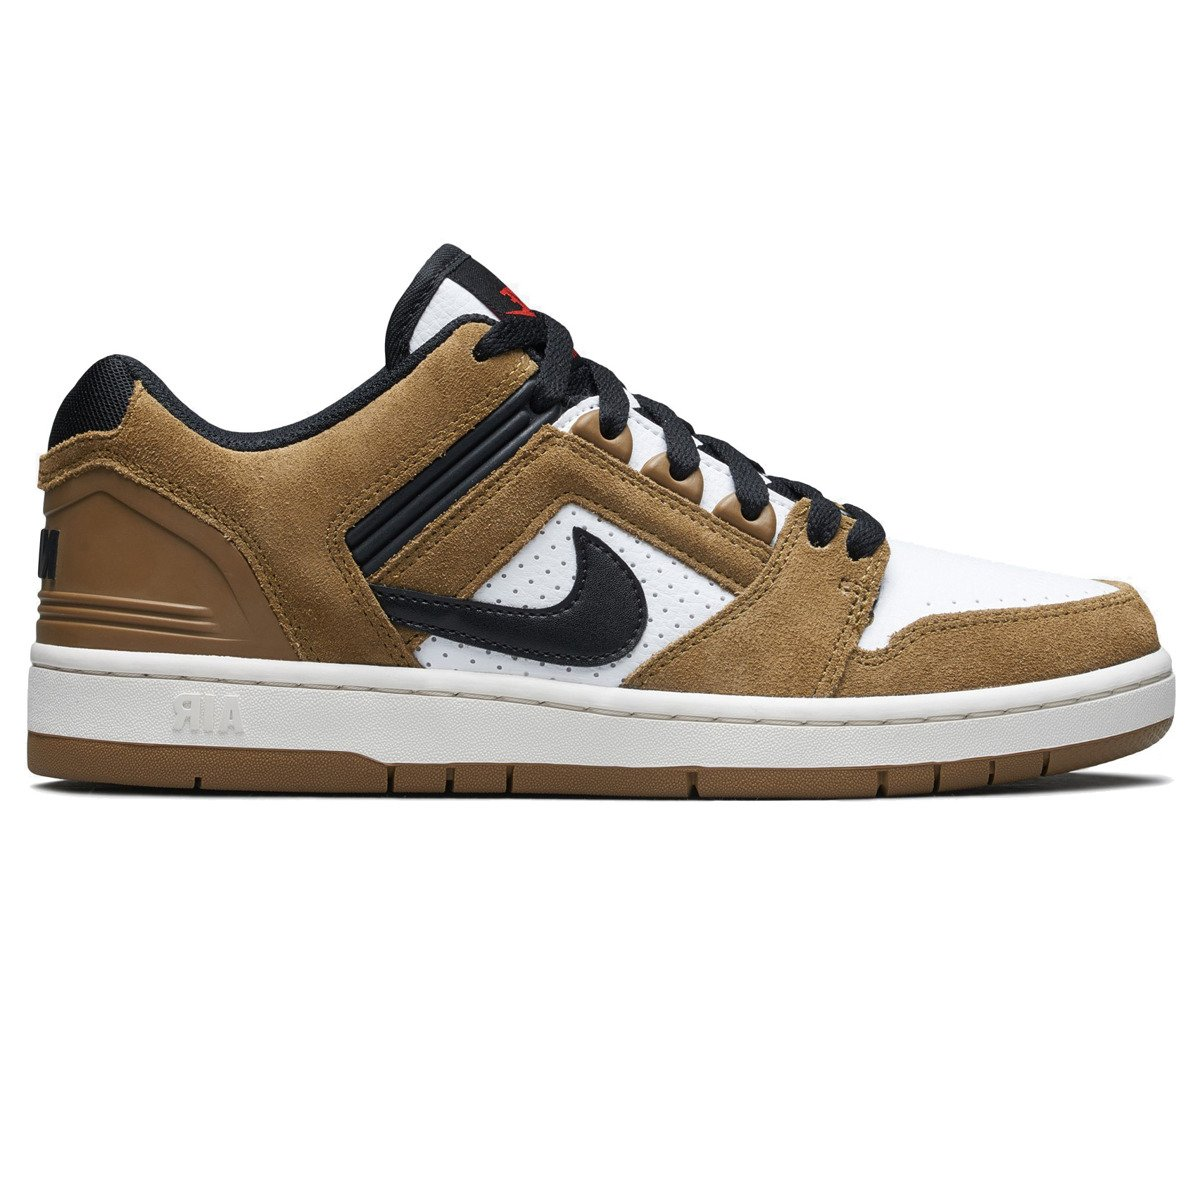 nike Sb Nyjah Shoe For Sale ✓ 2018 hombres Style 2018 ✓ d1b9b1